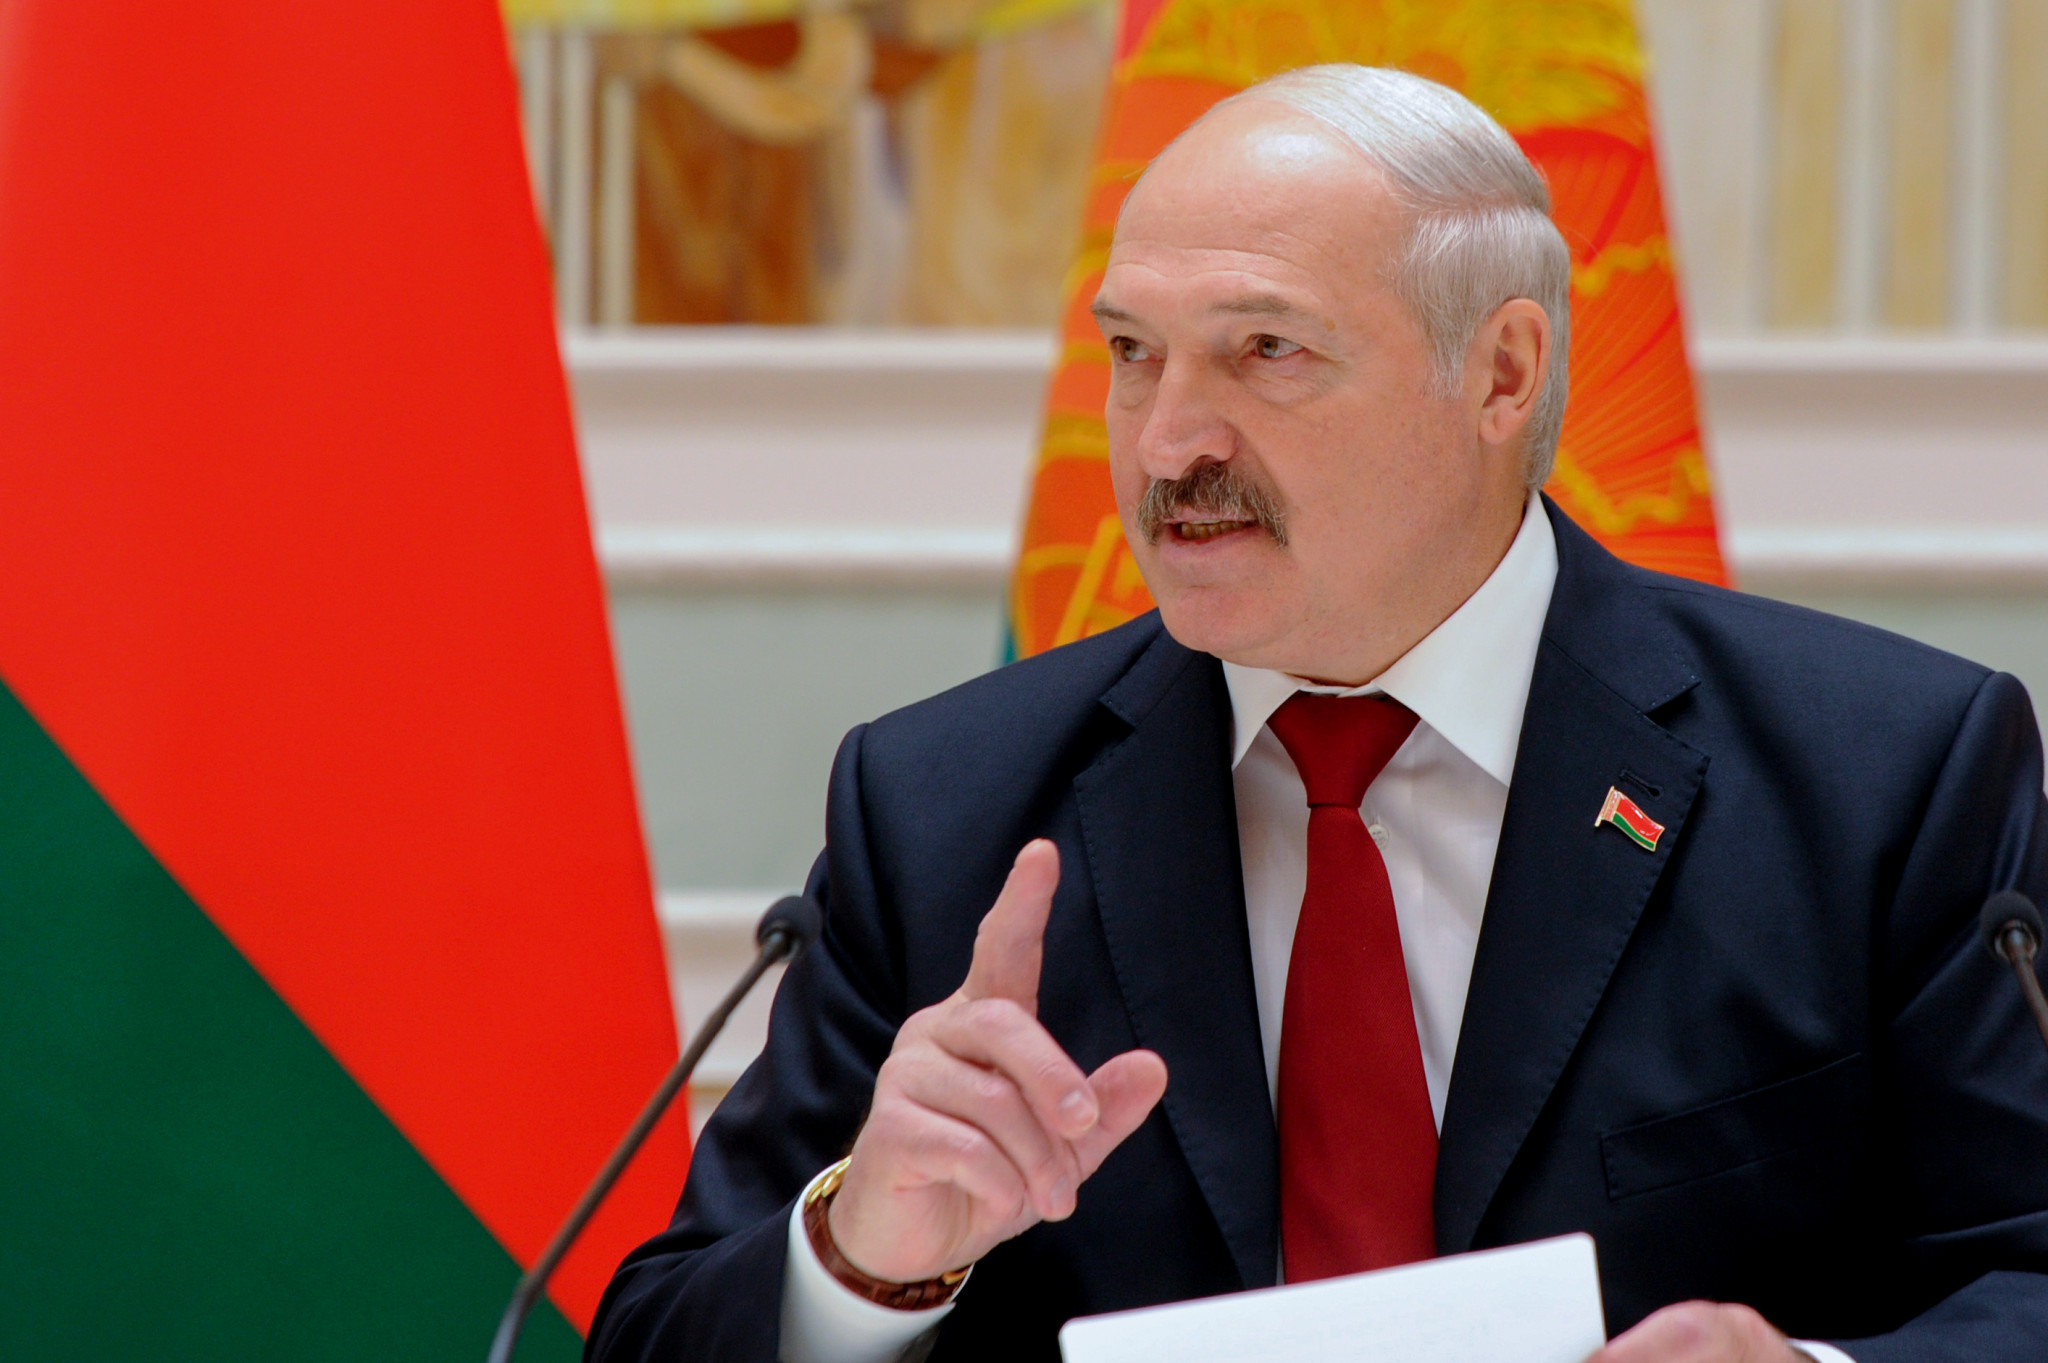 The invitation came from Belarus President Alexander Lukashenko who has welcomed several foreign leaders to the host city ©Getty Images